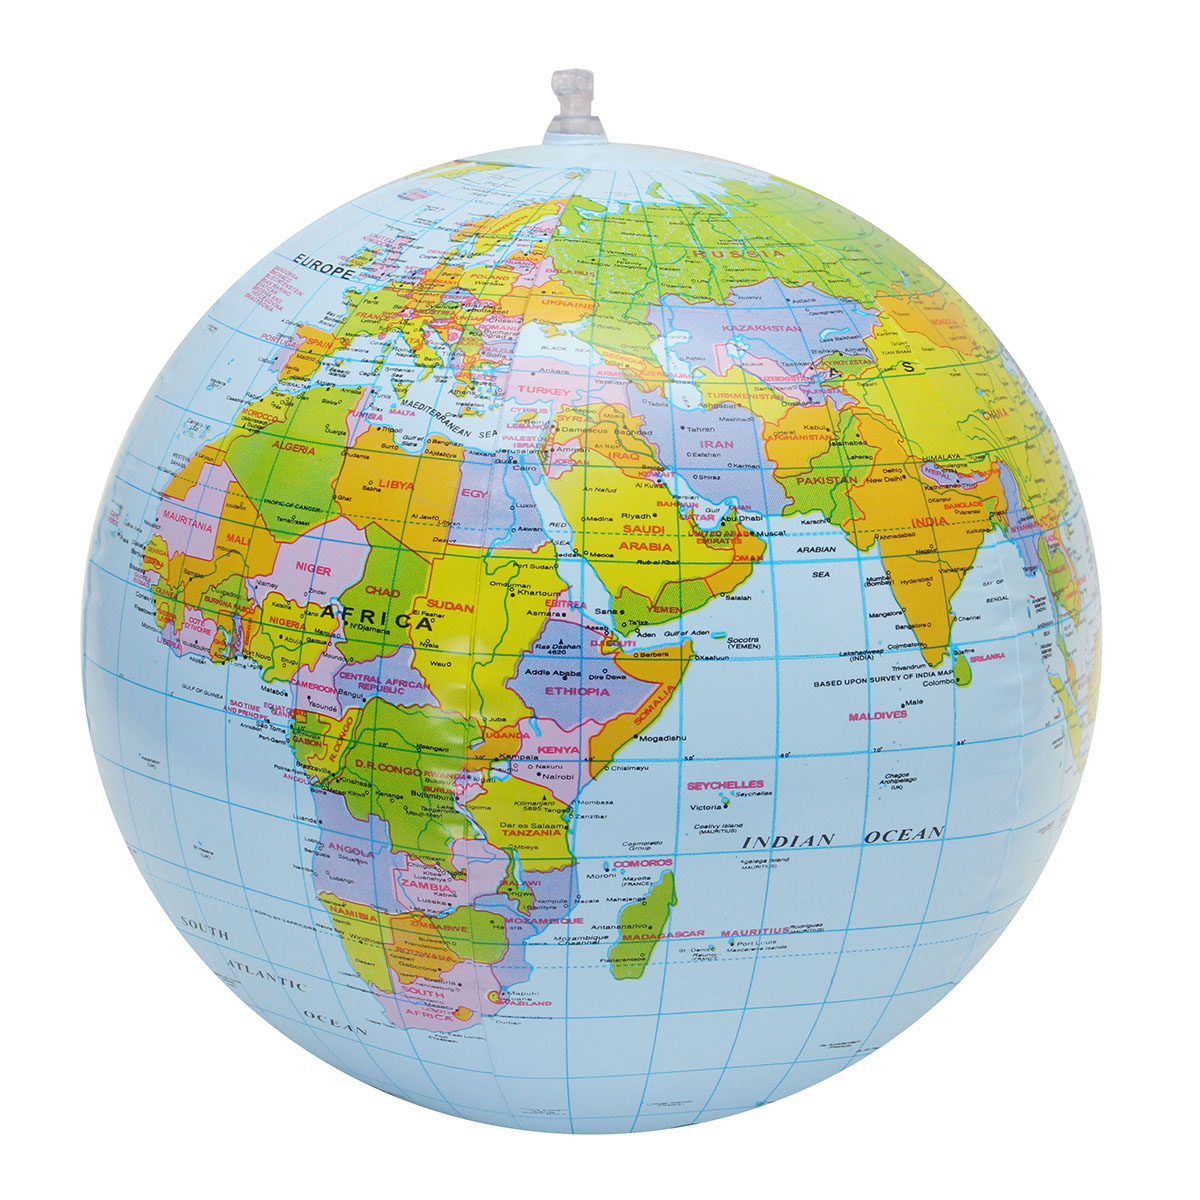 US $2.6 31% OFF|30cm Inflatable Globe World Earth Ocean Map Ball Geography Globe Maps Of The Earth on map earth's, map of the world, world globe, printable globe, topographic map, mappa mundi, thematic map, map of the volcano,